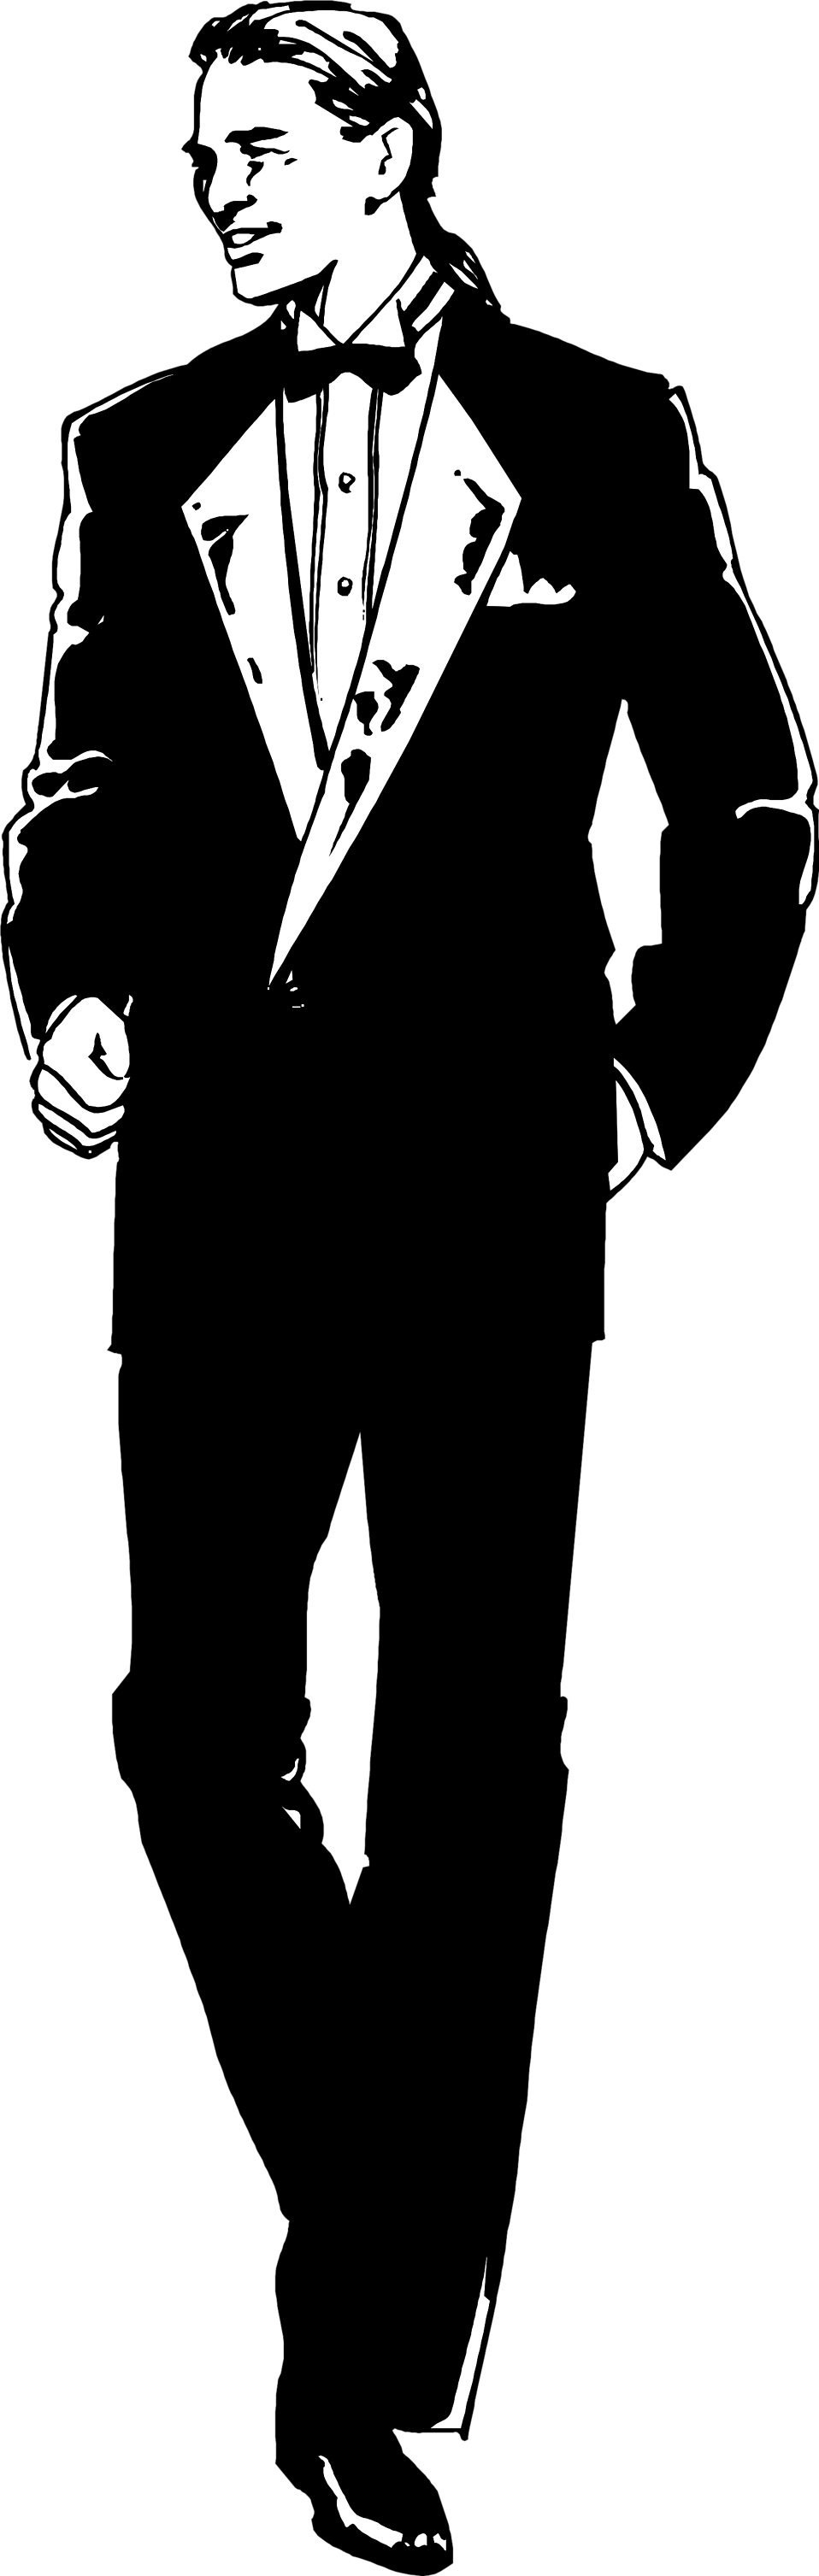 Free Stock Photo  Illustration of a handsome man in a tuxedo Handsome Man In Tux